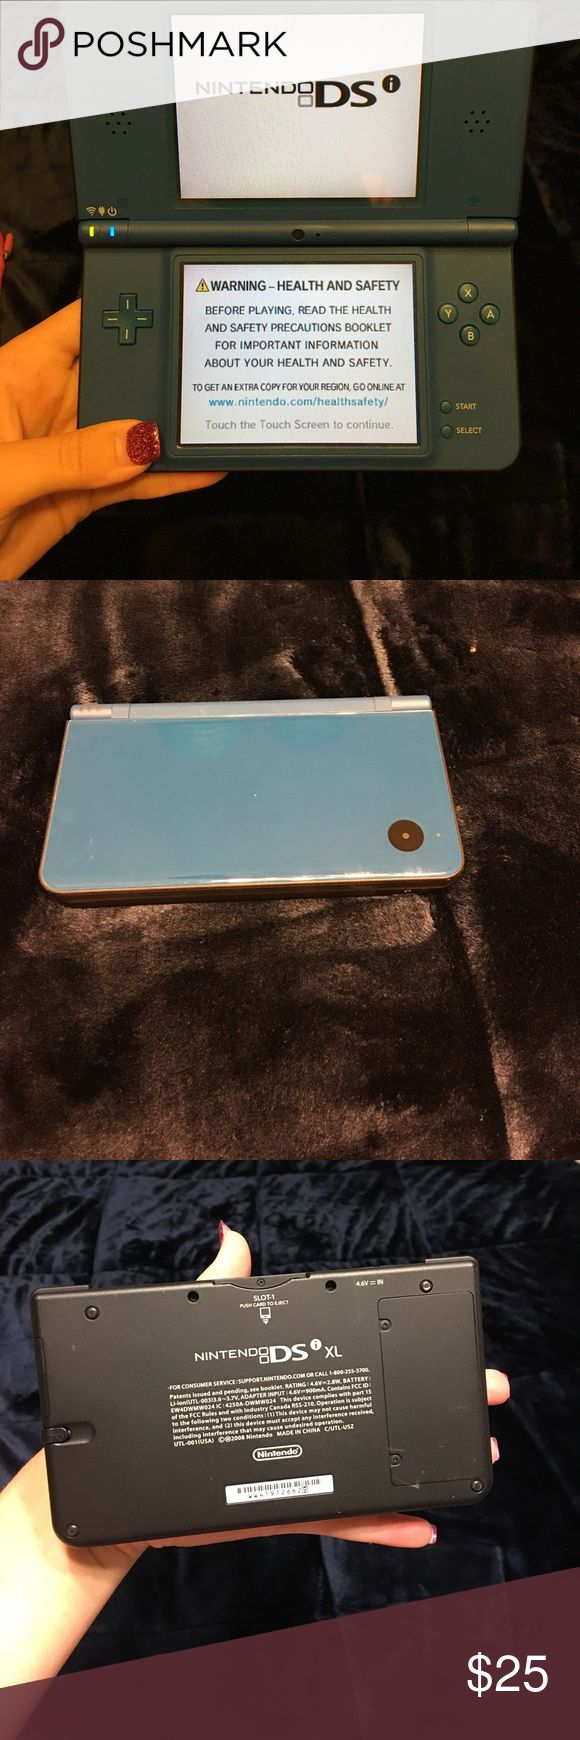 Nintendo DS XL Great condition. Nintendo Other